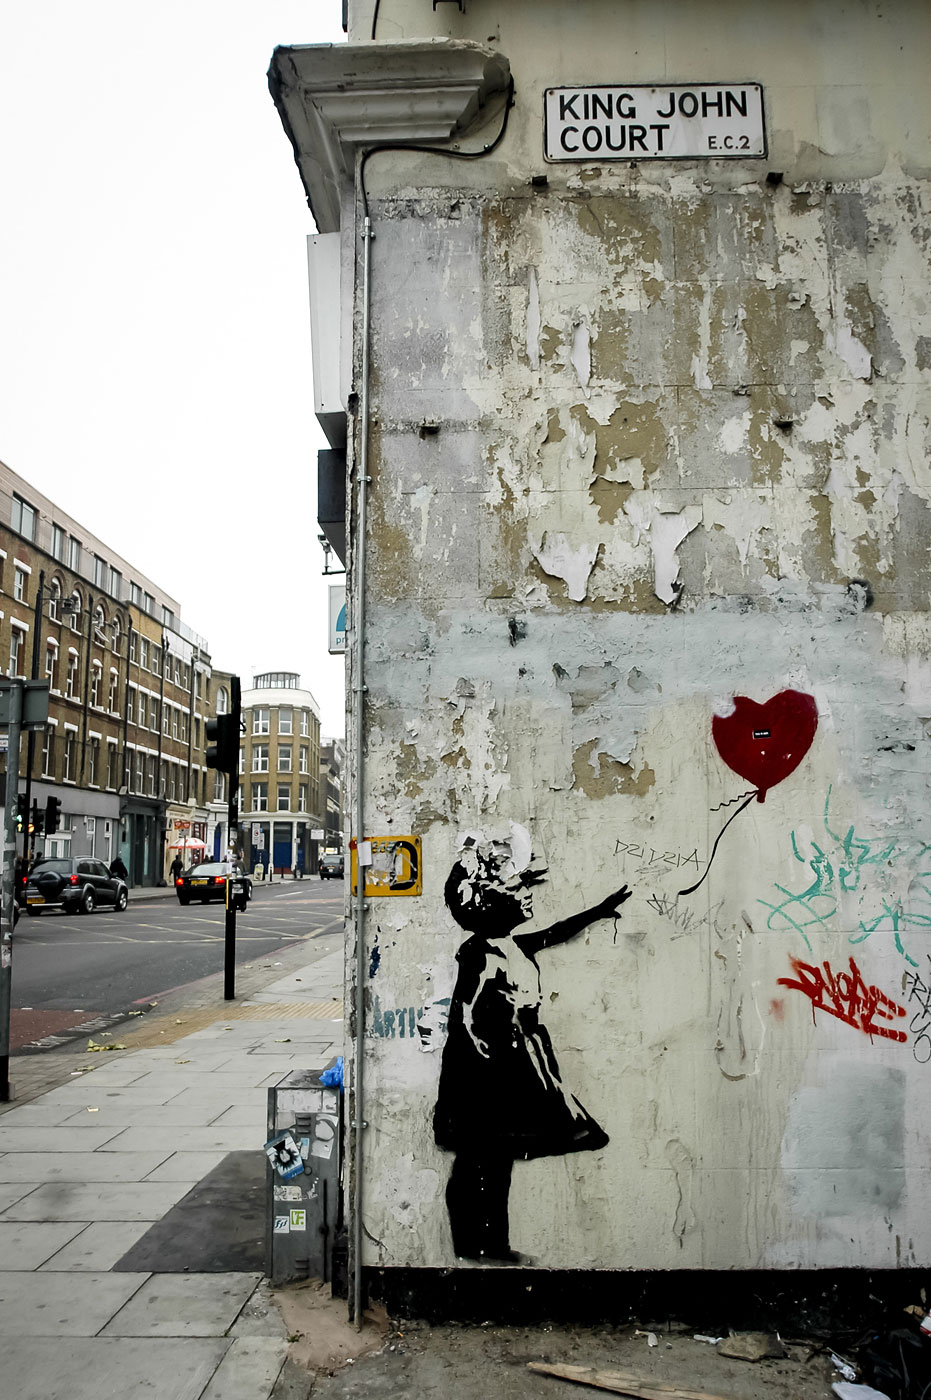 A Banksy is seen in London, England on Dec. 12, 2004.